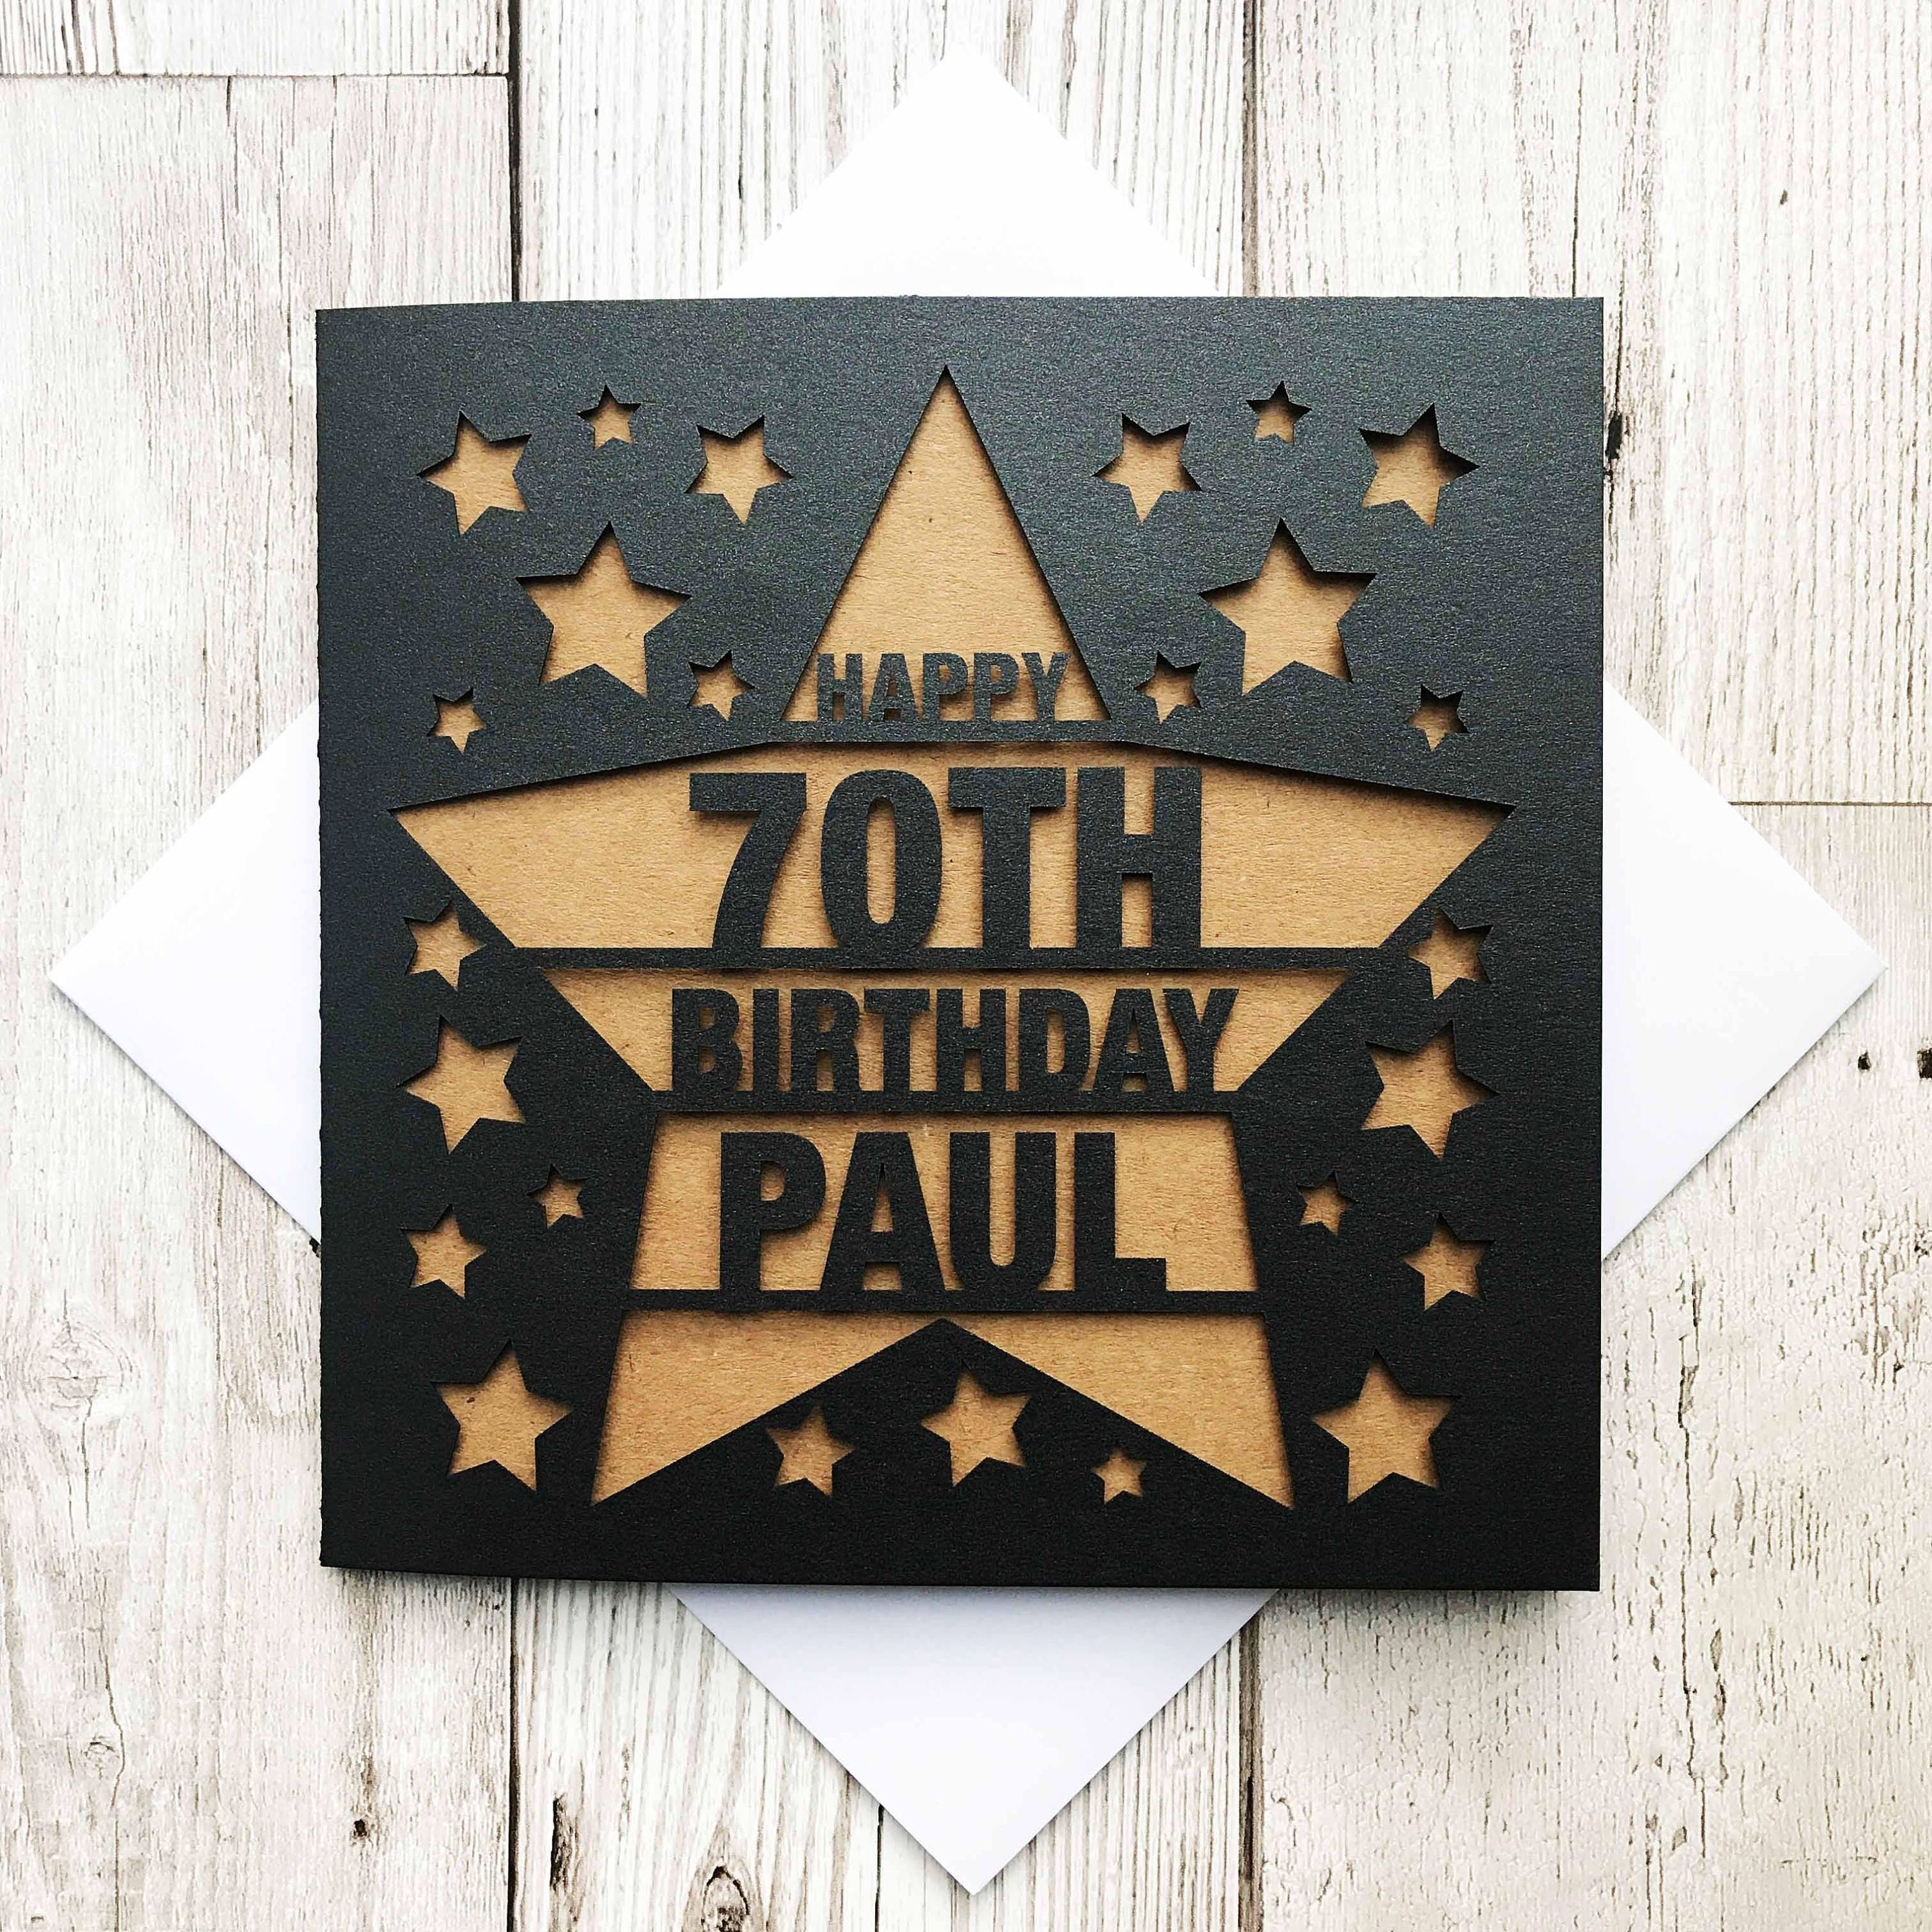 Personalised happy 70th birthday happy 70th 70th birthday cards personalised happy 70th birthday happy 70th 70th birthday cards laser cut birthday bookmarktalkfo Image collections